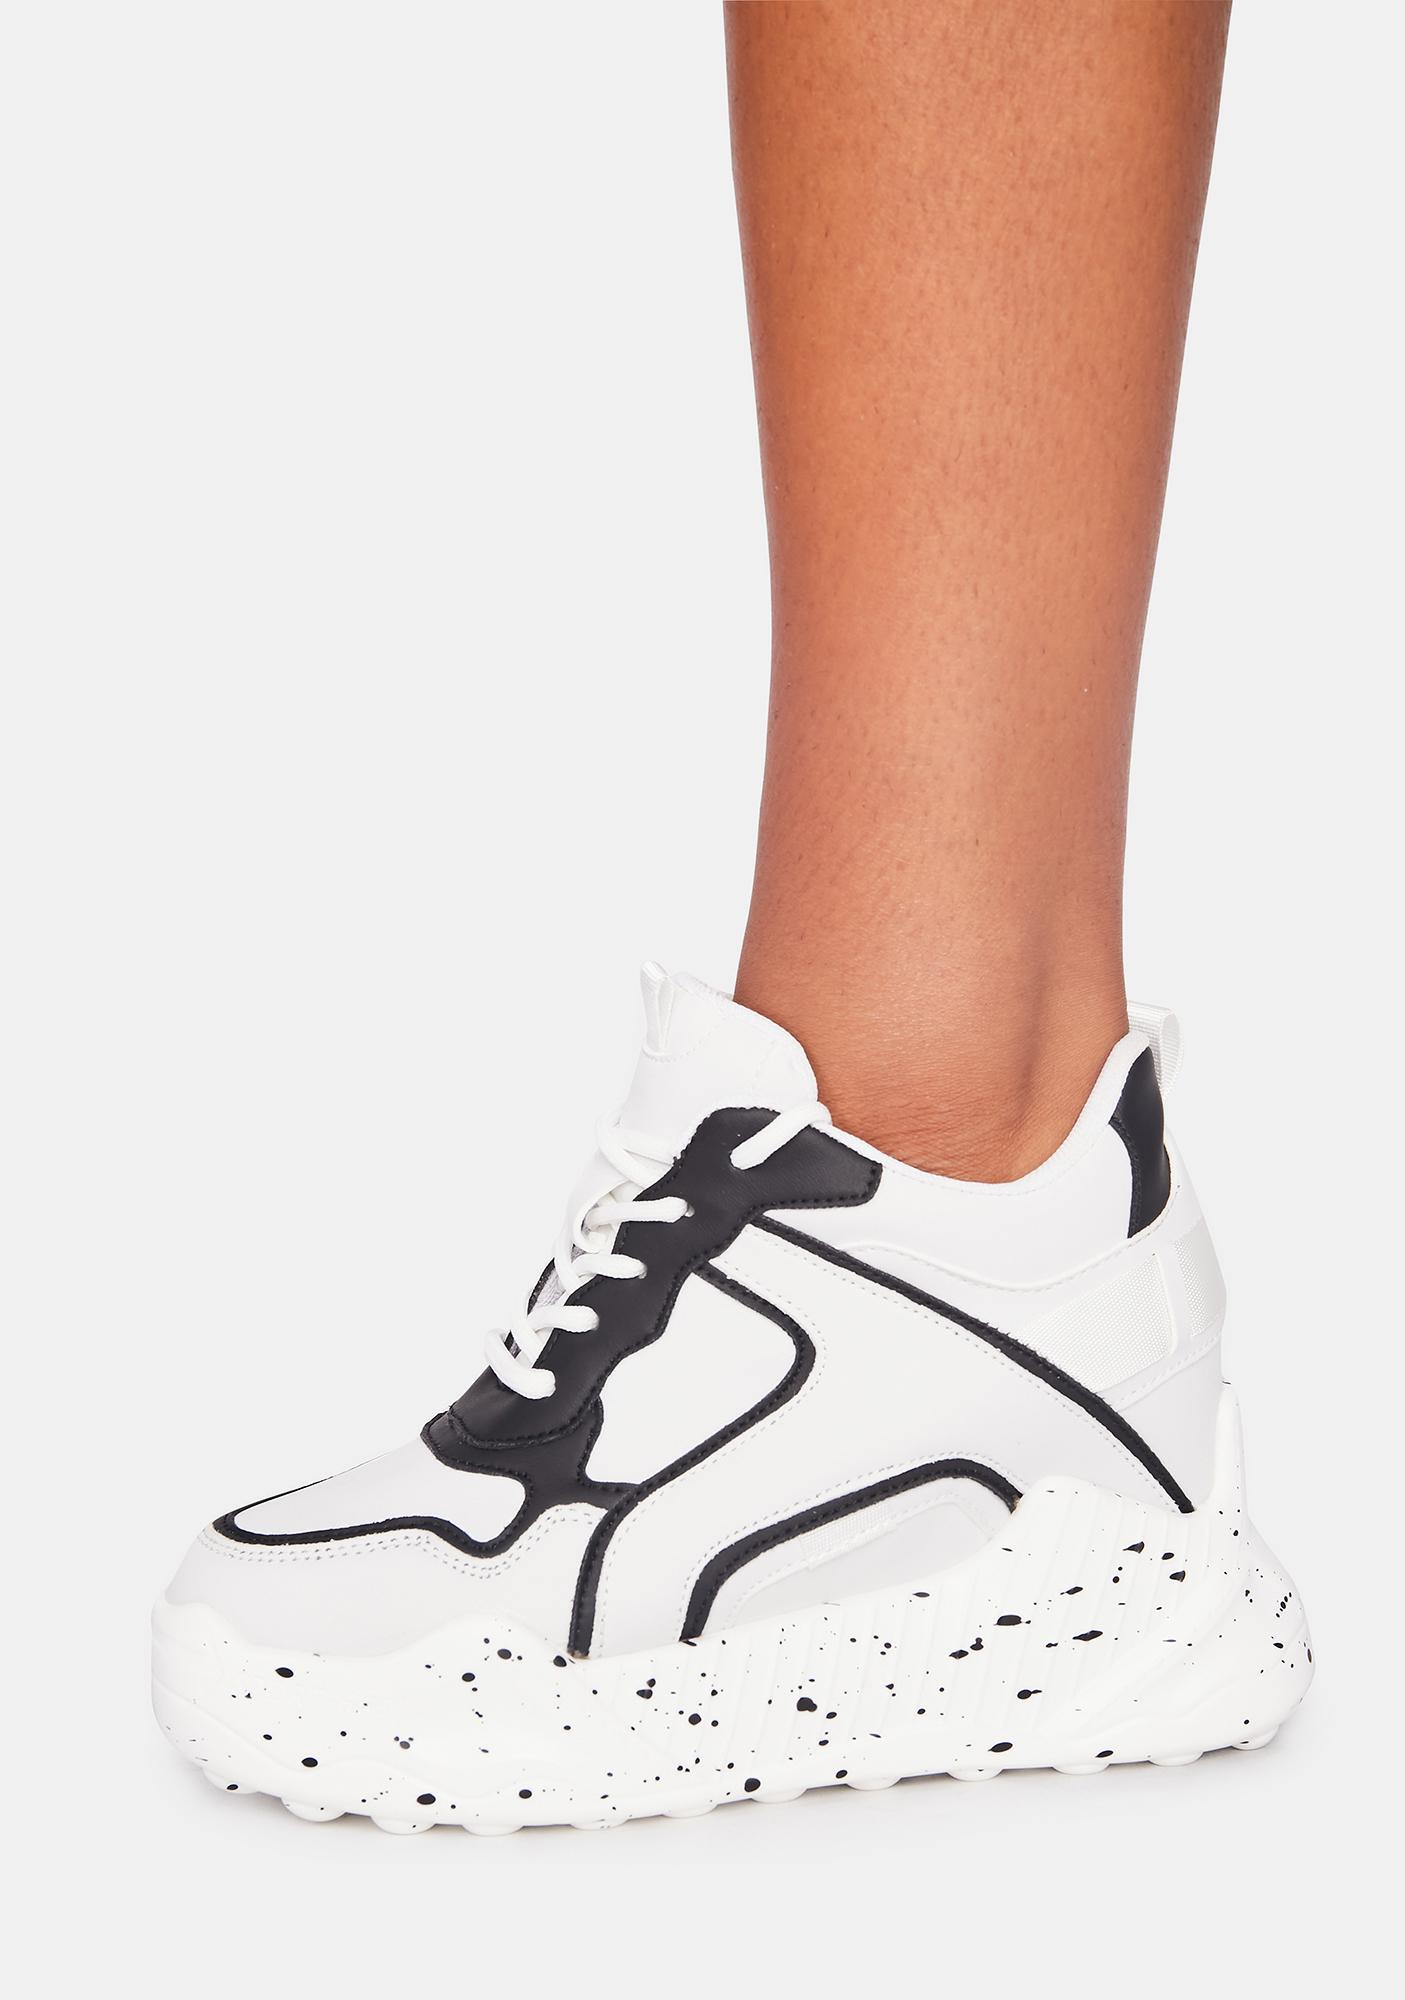 Anthony Wang Monochrome Durian Platform Sneakers